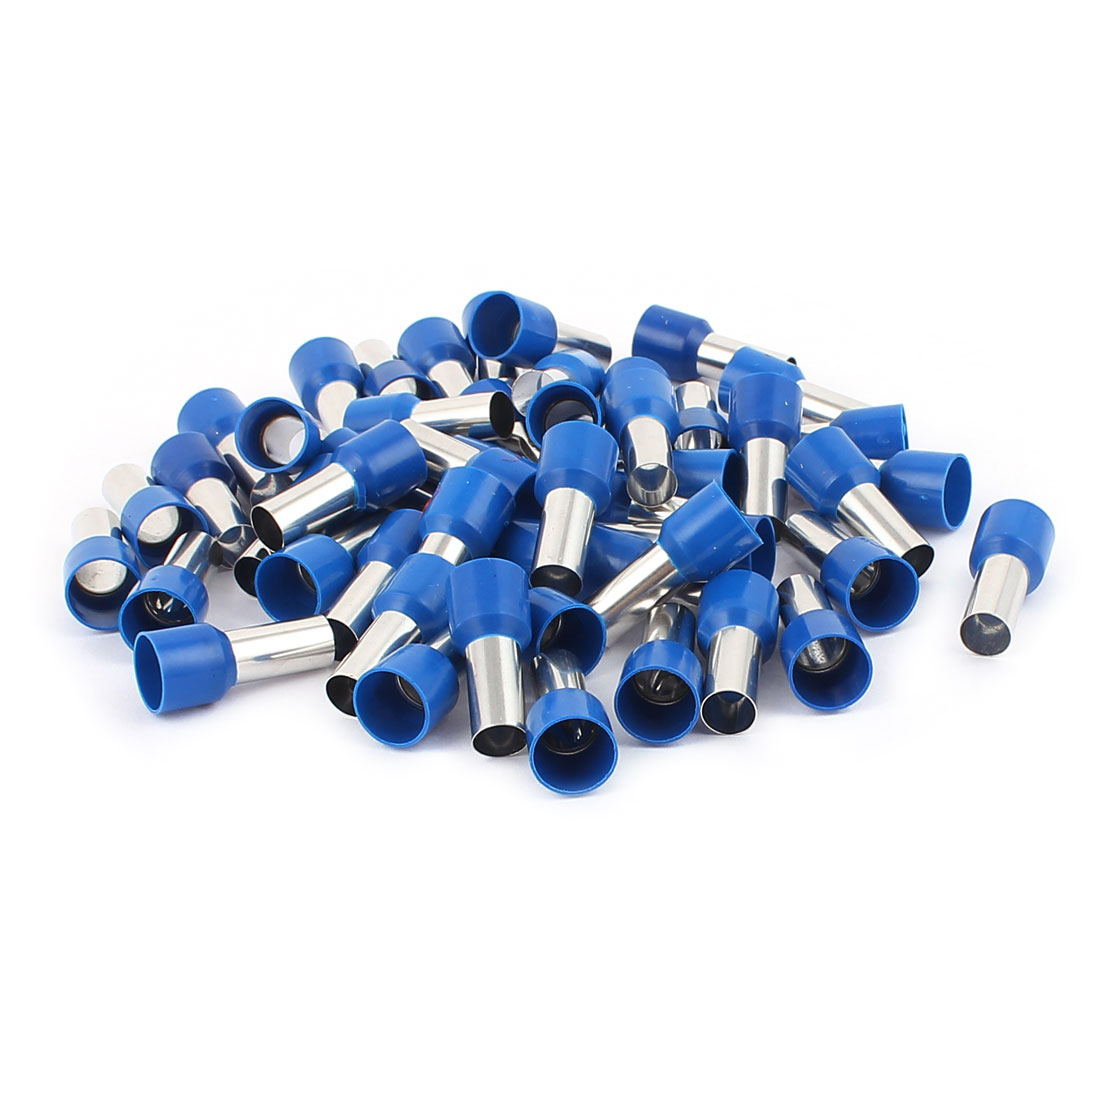 Tube Type Insulated Cable Wire Cold Pressing Terminals Blue Silver Tone 50Pcs